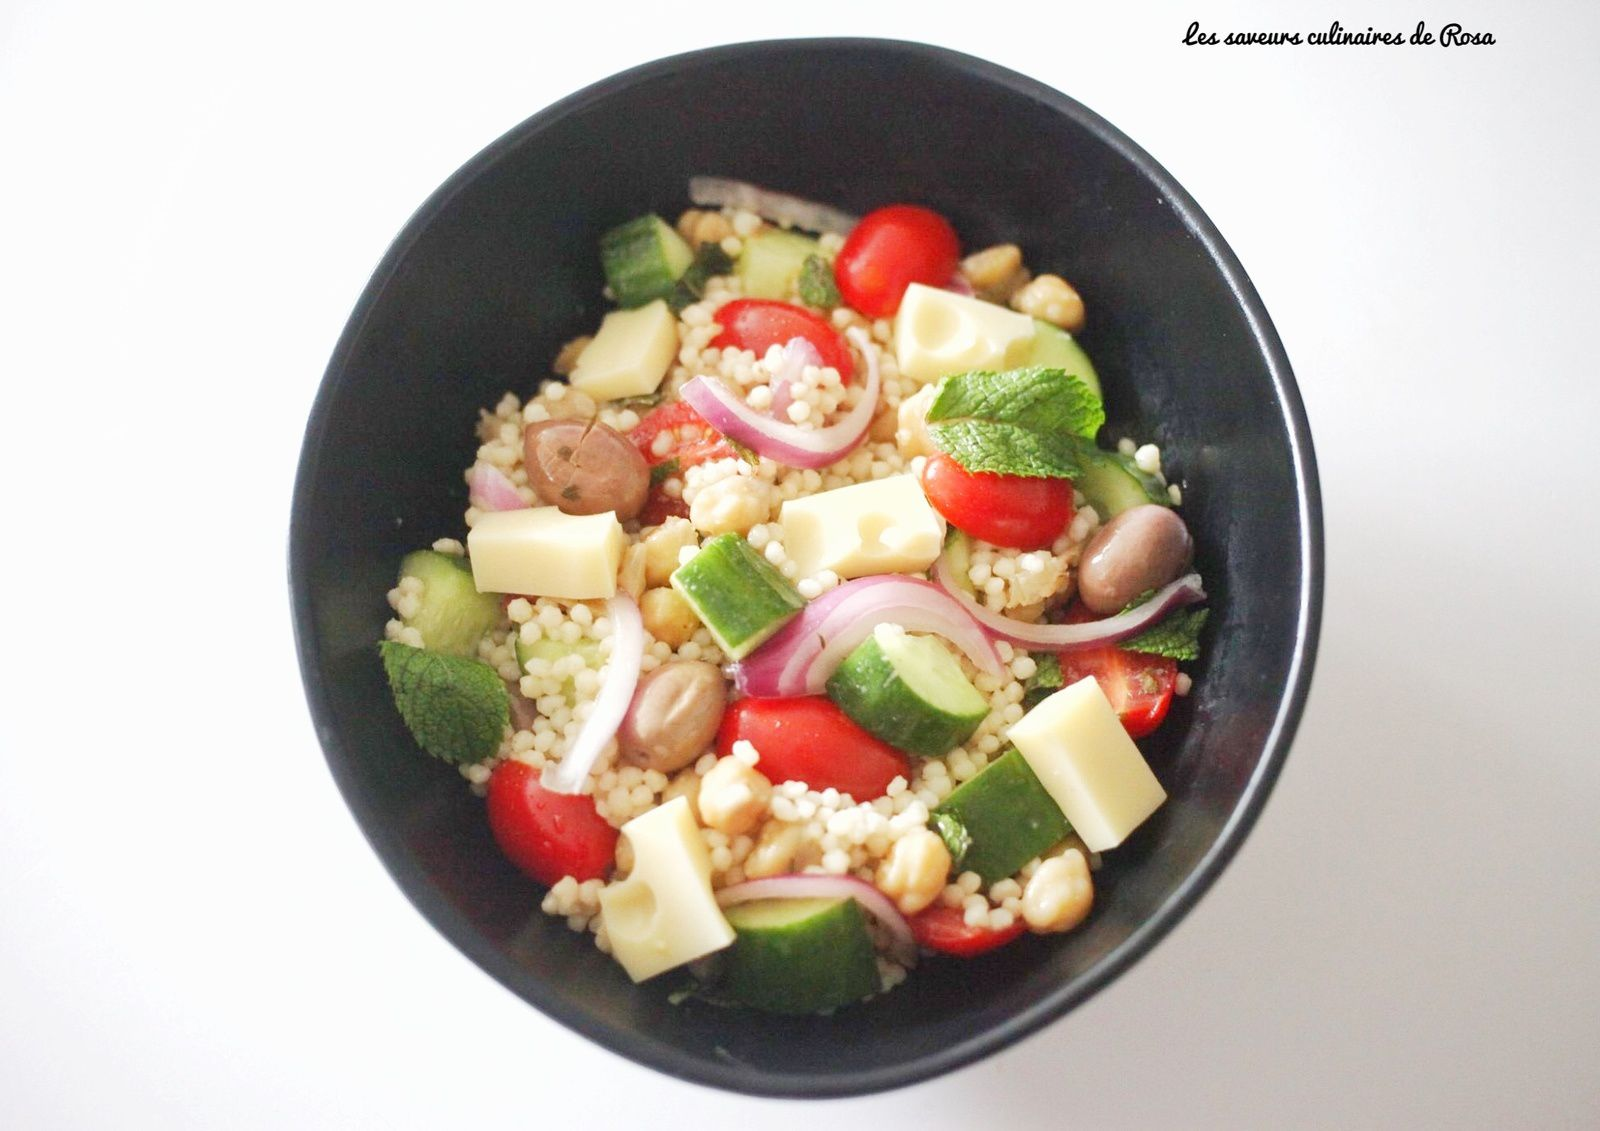 Salade aux petits plombs ( pearl couscous salad)